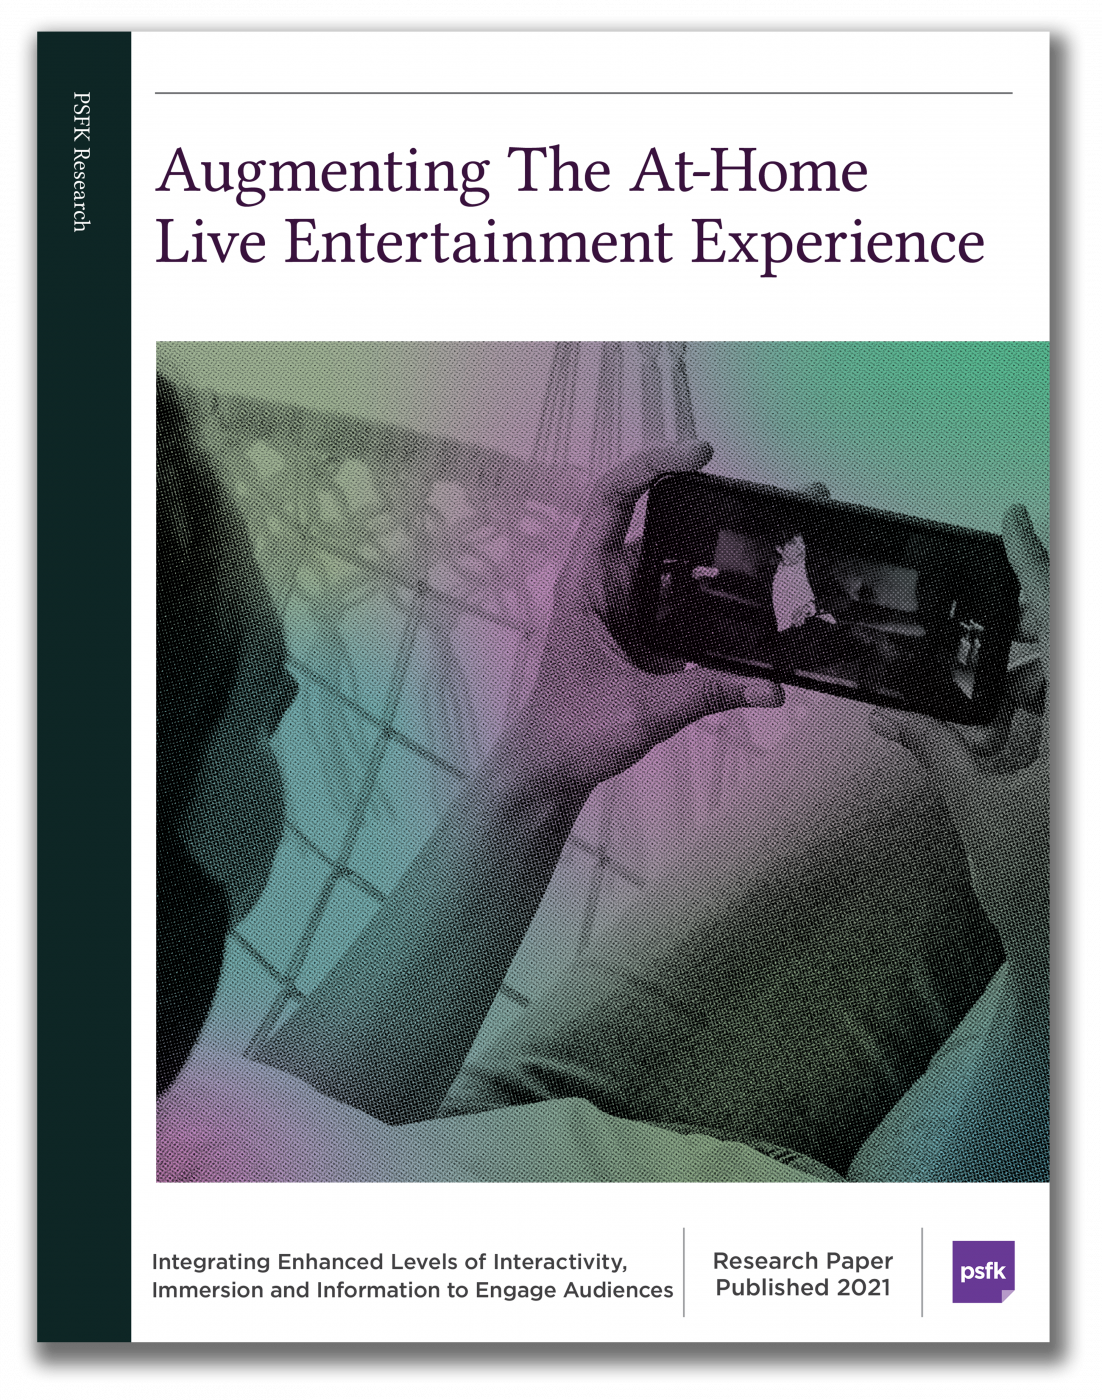 Augmenting The At-Home Live Entertainment Experience